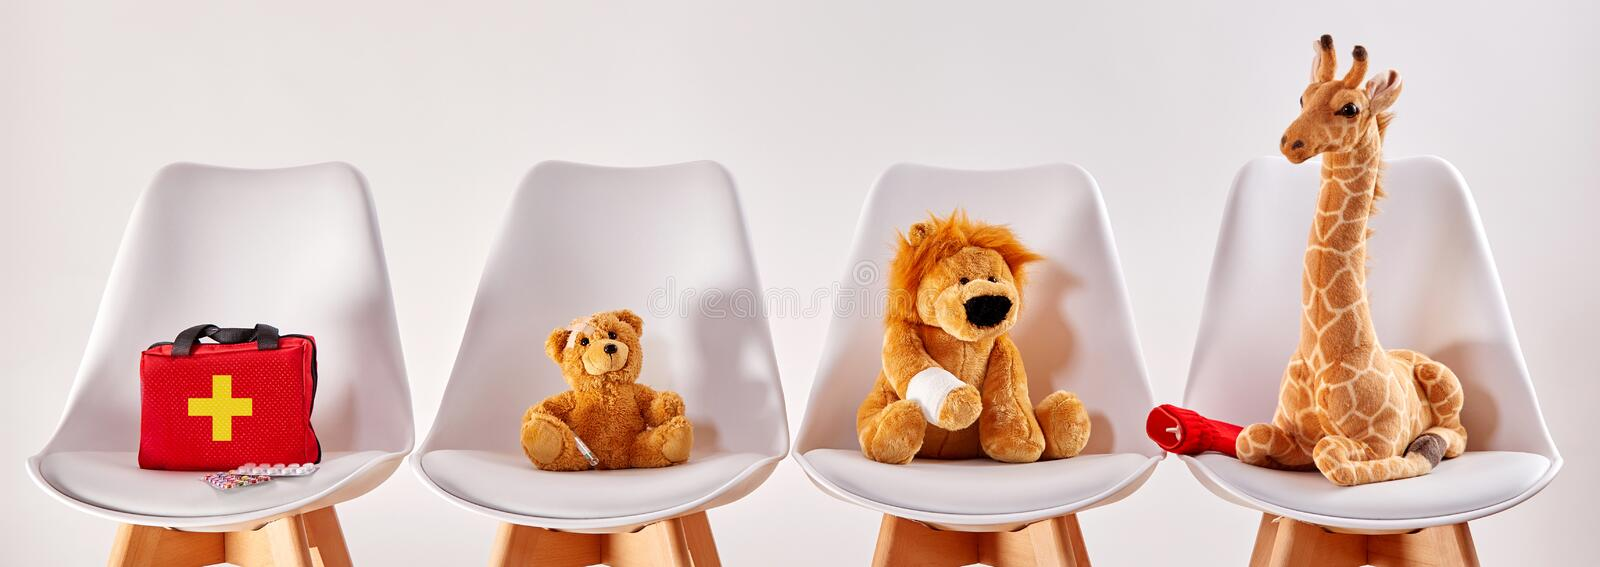 Animal toys in the waiting room of a hospital royalty free stock images